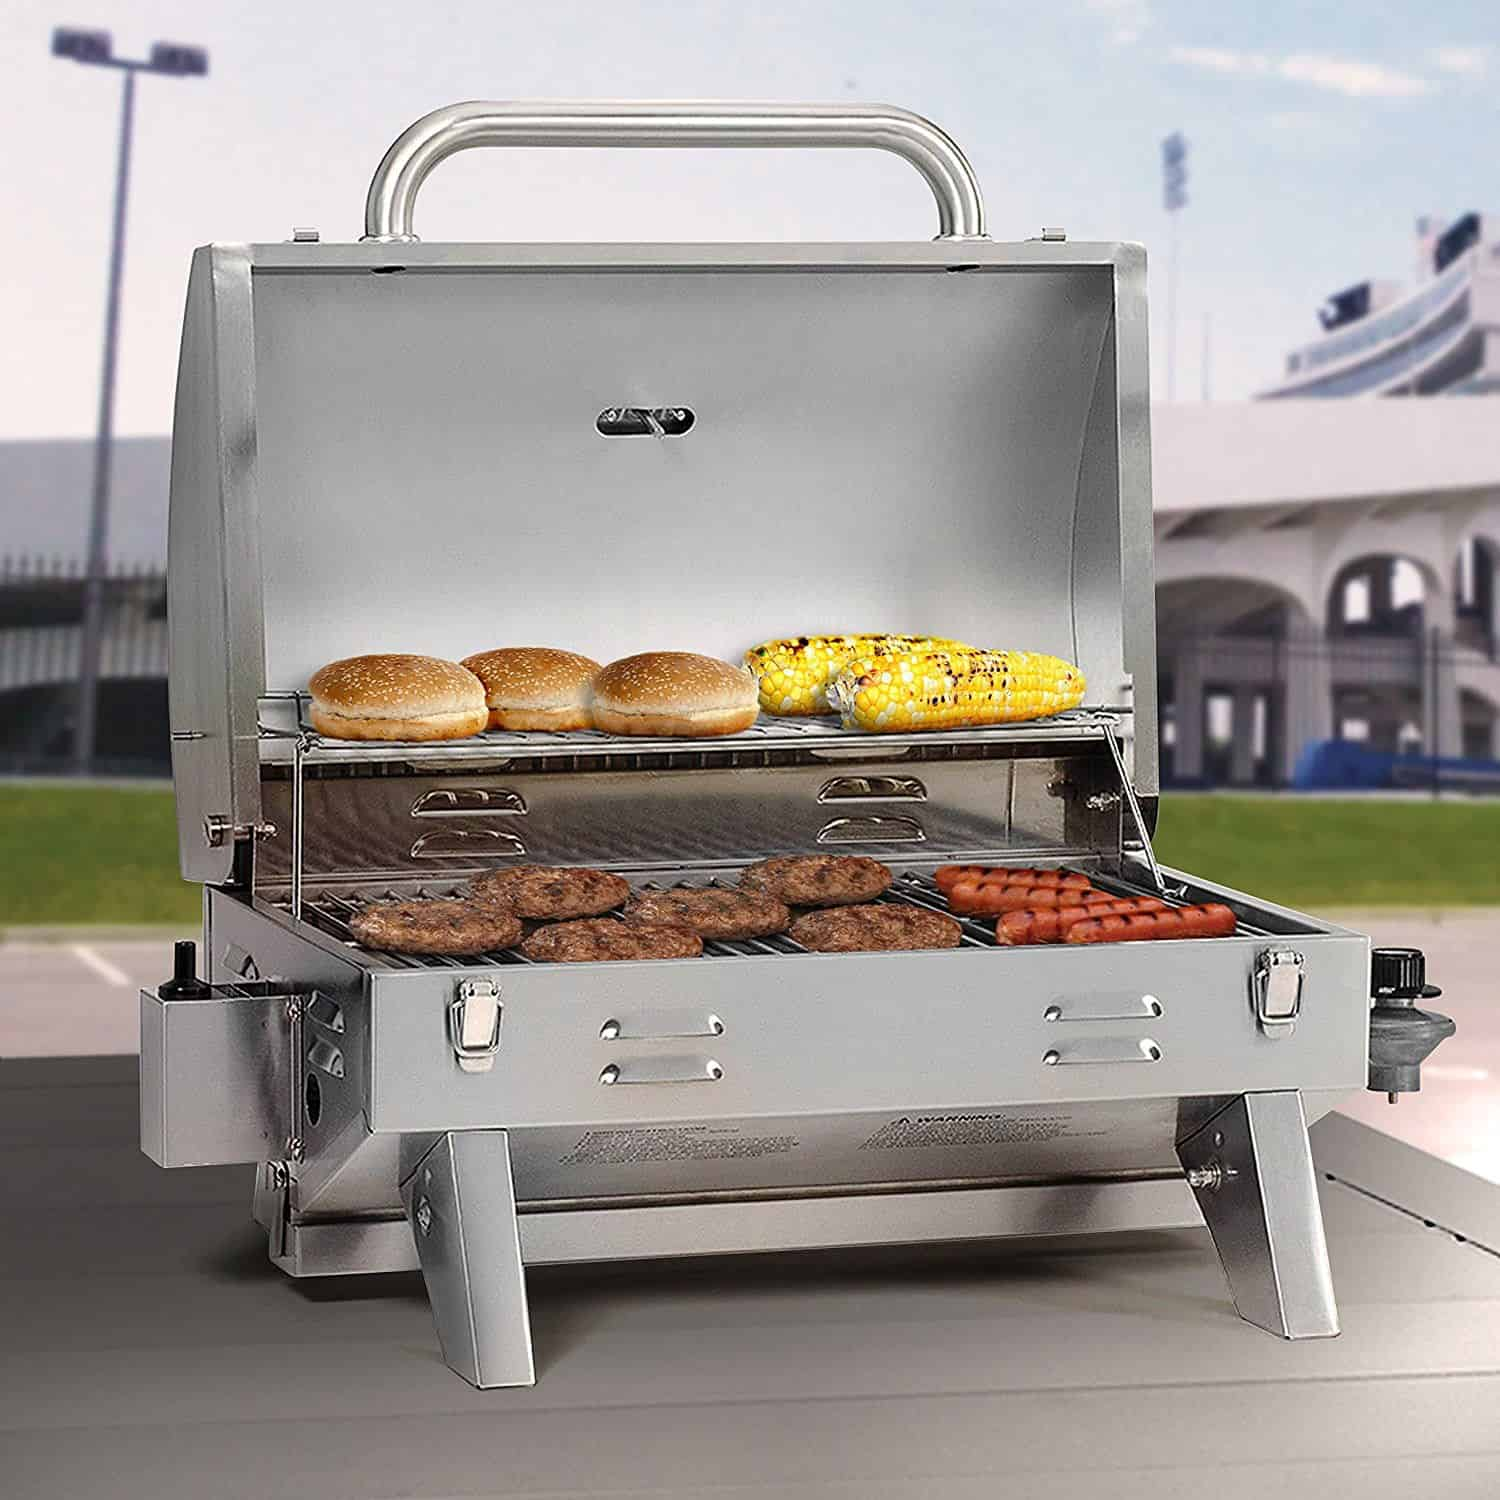 A portable gas grill made from stainless steel with strong metal construction.